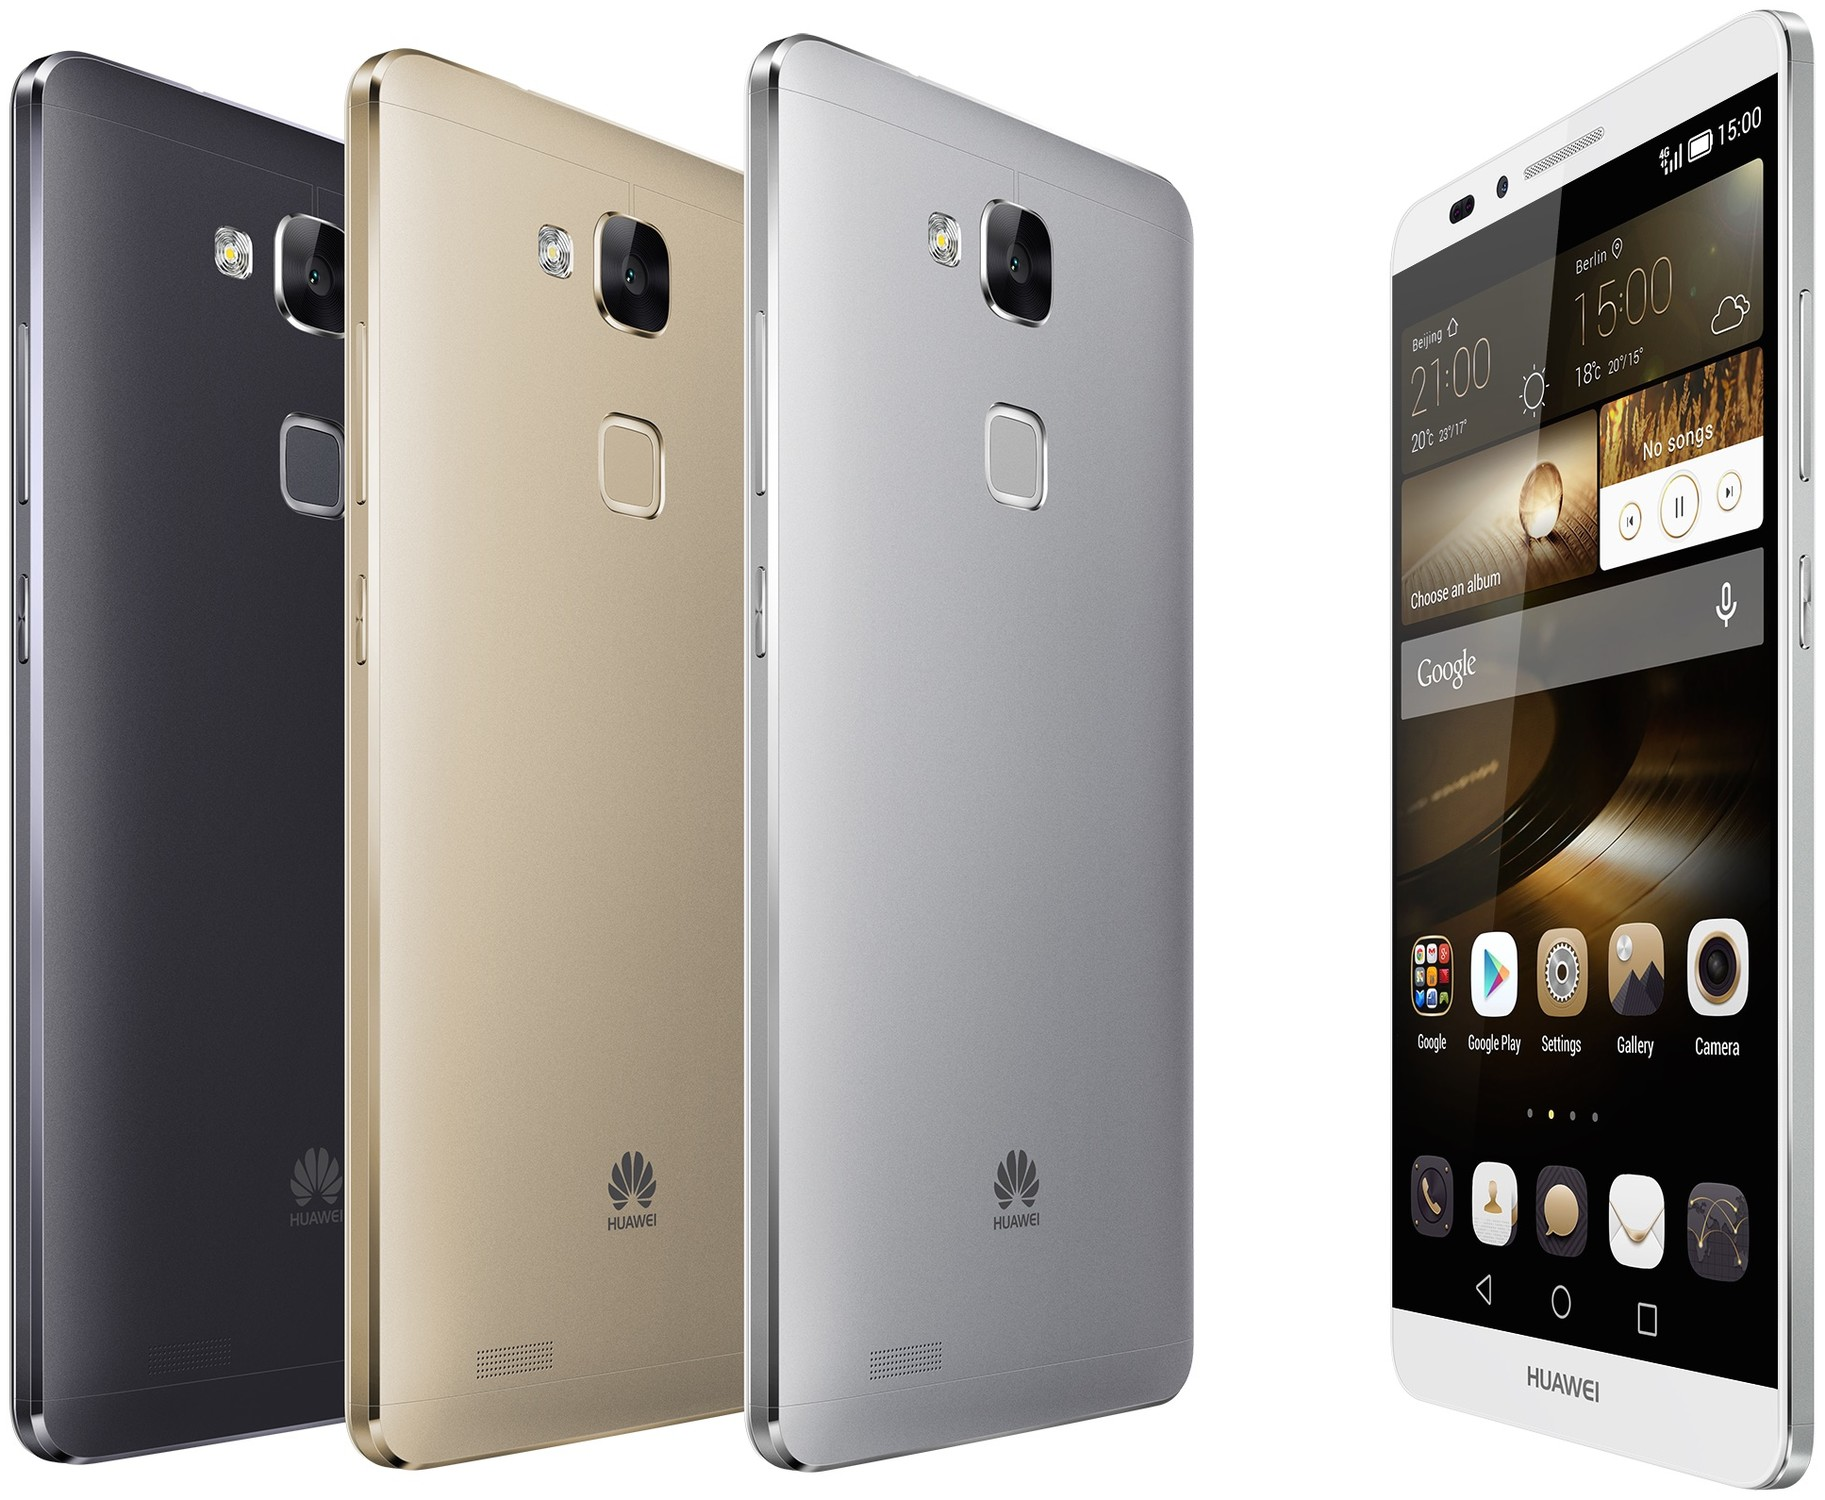 Huawei ascend mate 7 monarch edition specifications.